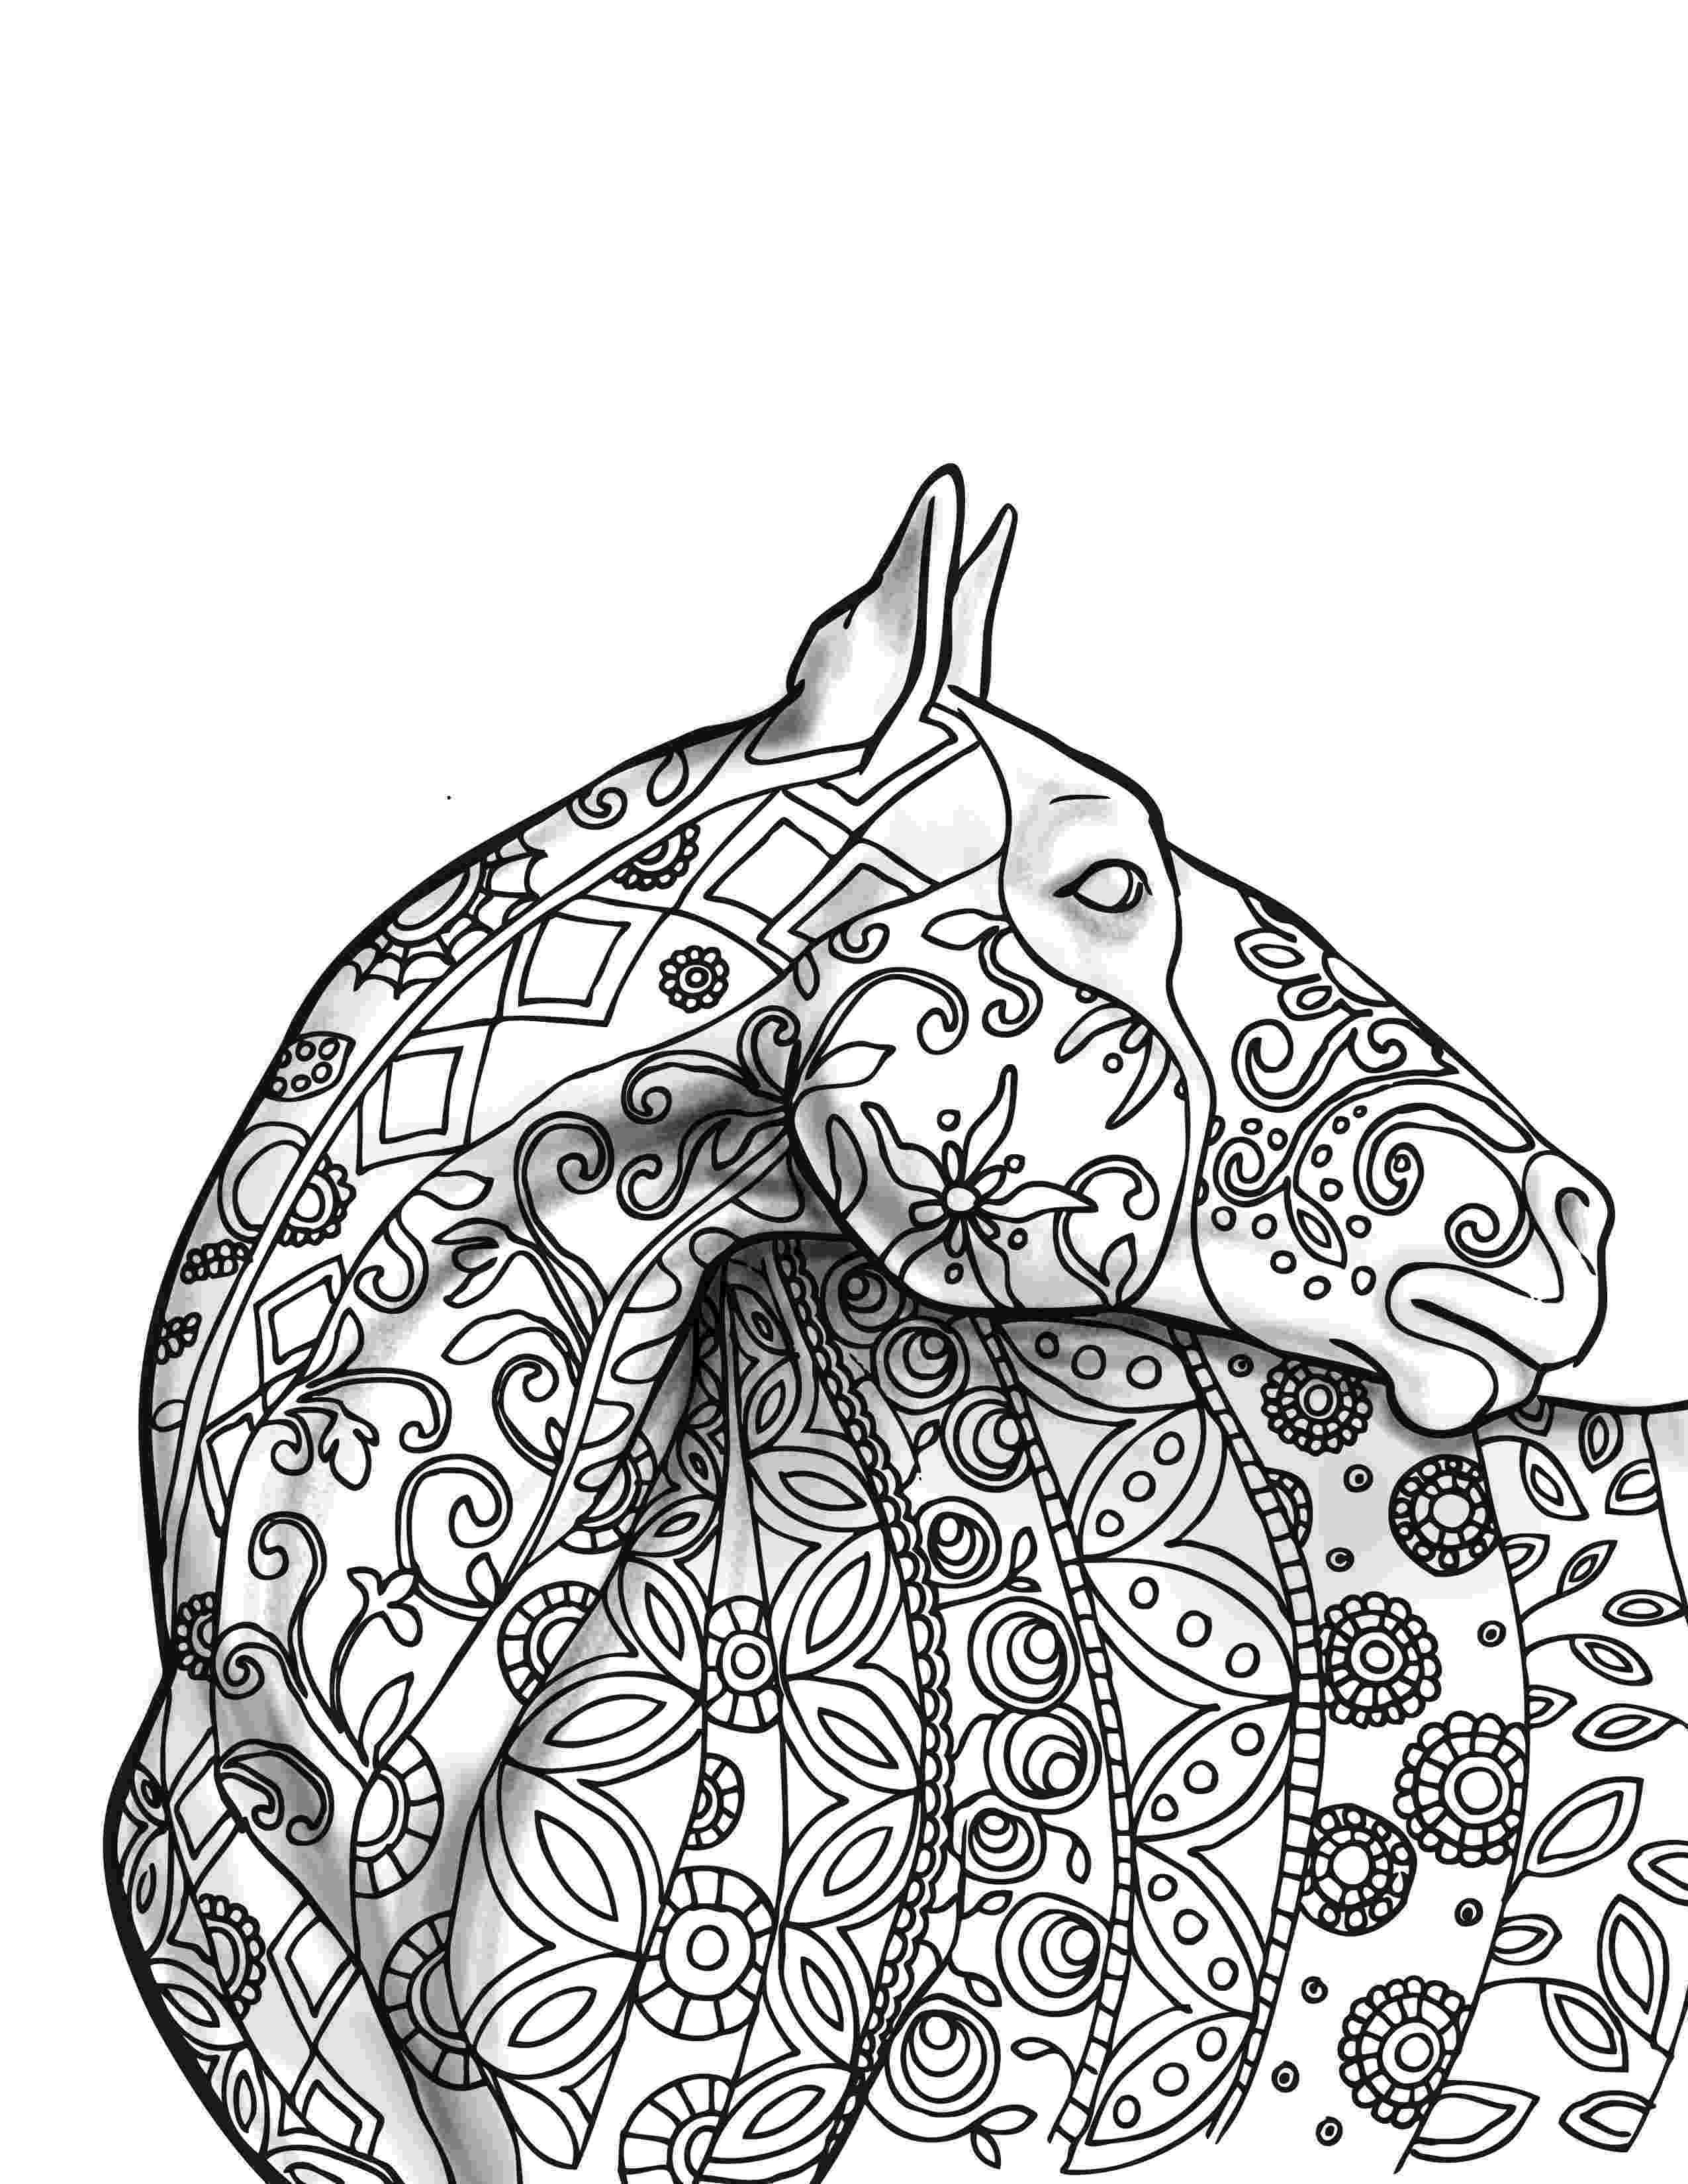 coloring pages online for adults letter c coloring pages for your little ones for online adults coloring pages